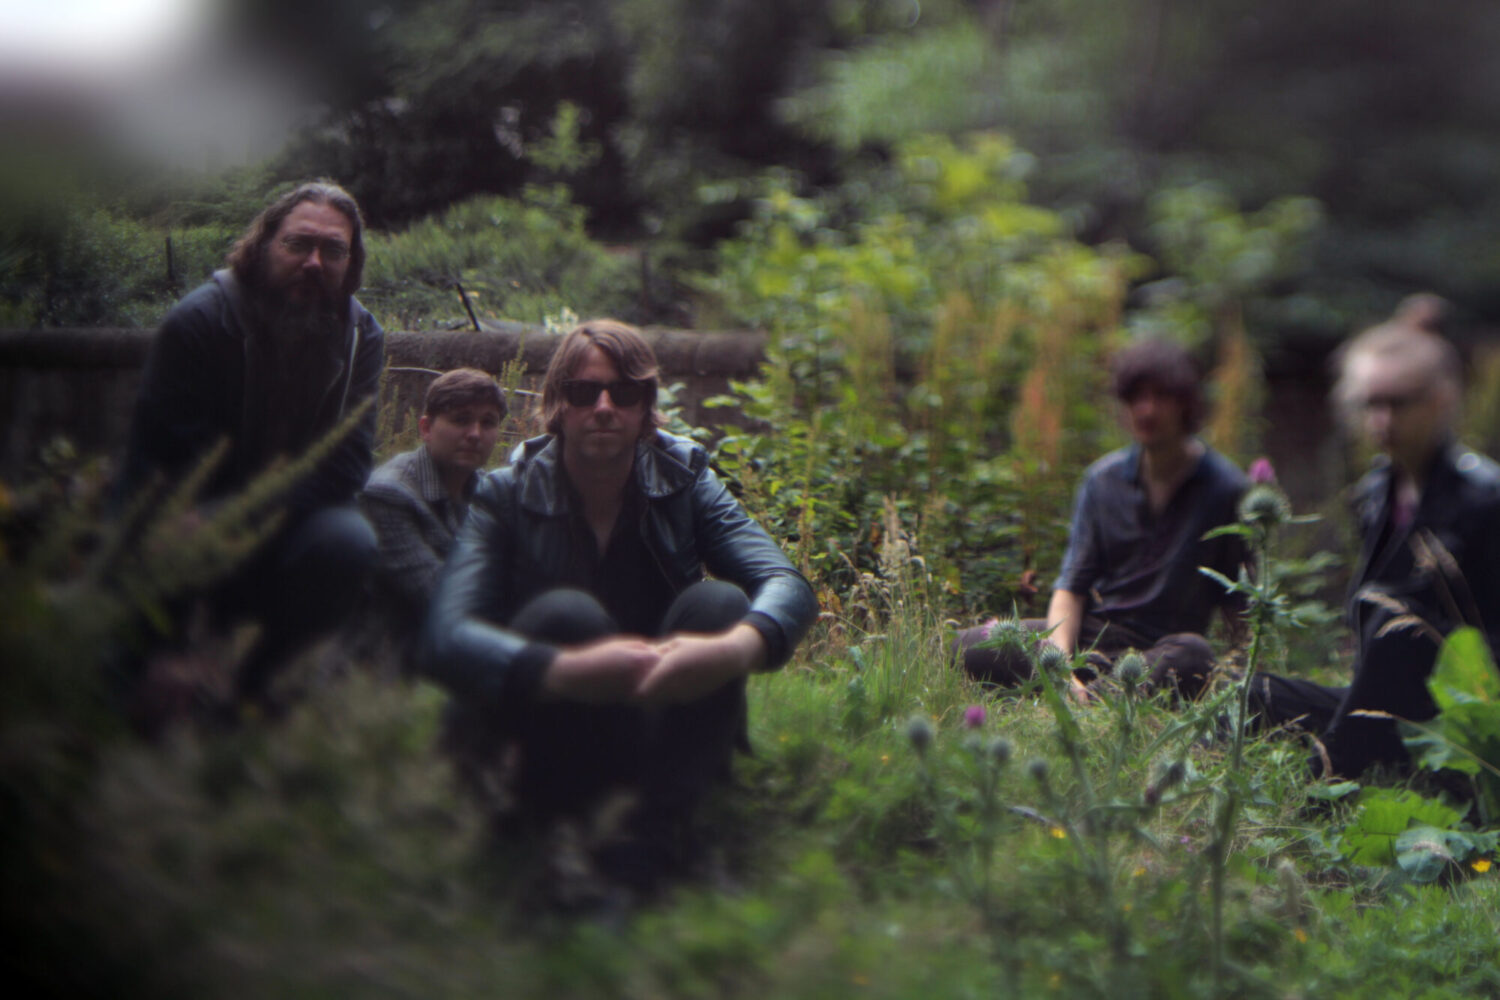 Auld Spells: I Want You Back / Another Way – video premiere